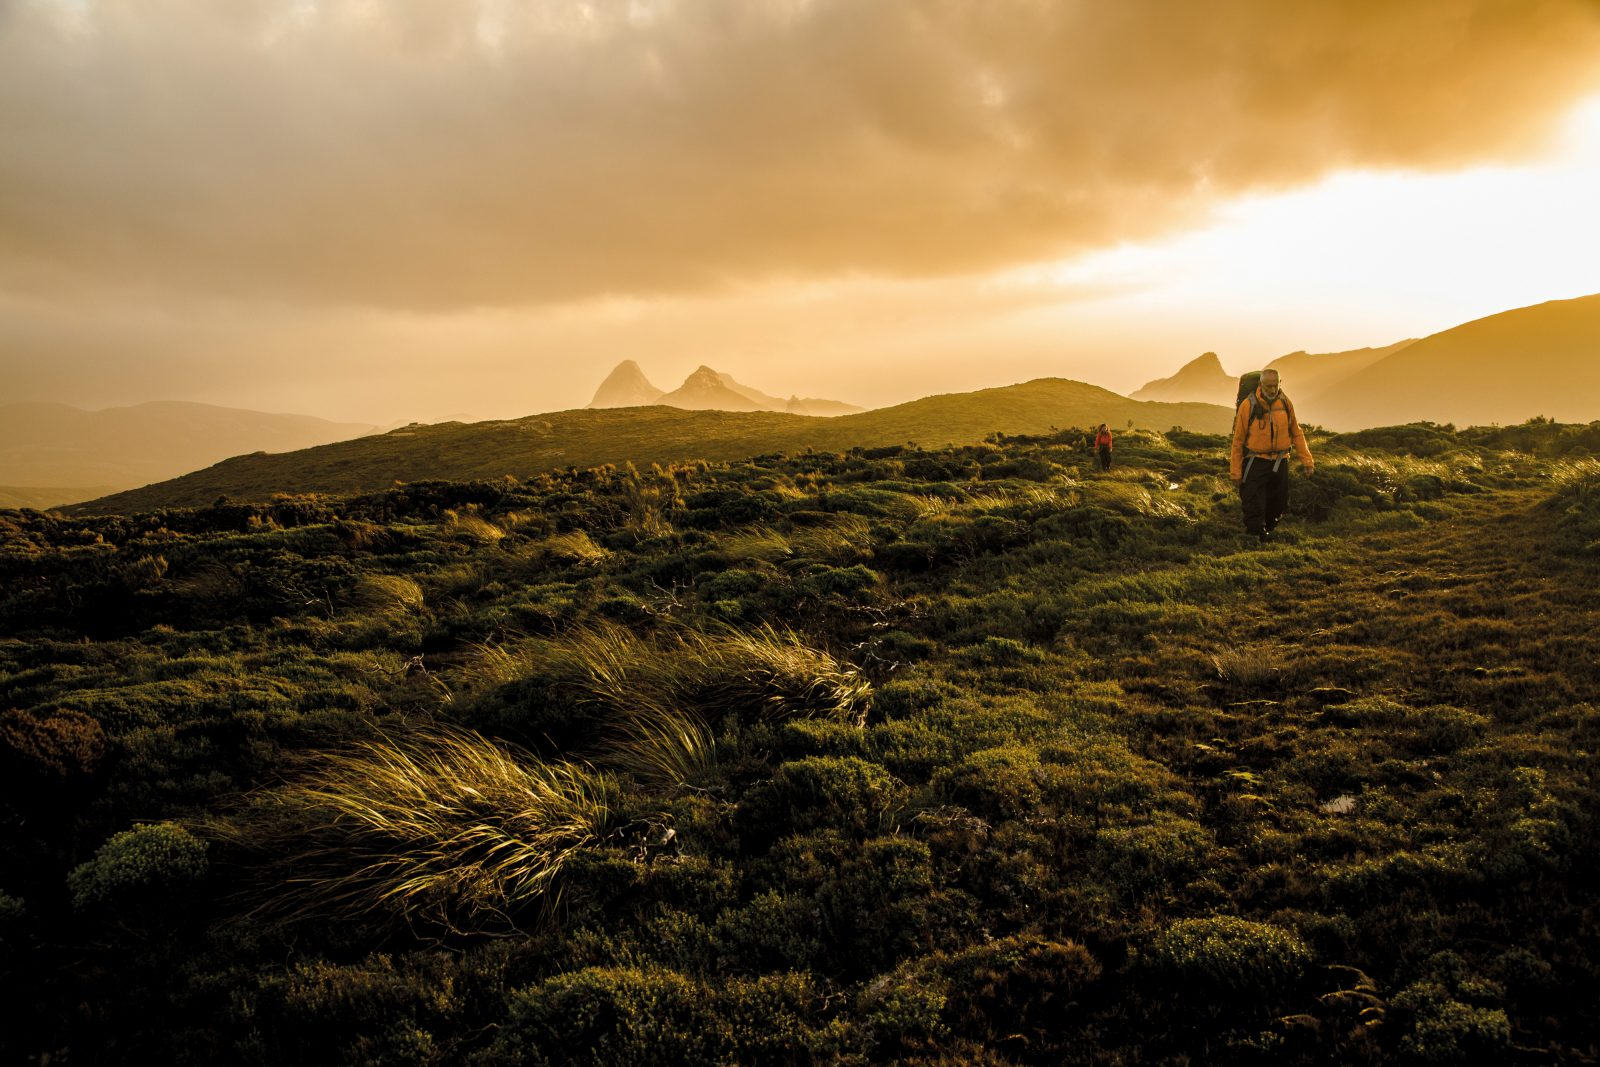 The peaks of Gog and Magog form the backdrop to prostrate mānuka, here formed into lanes by the winds of the Roaring Forties in southern Stewart Island. Trampers that venture into wilderness areas must take everything with them to survive—food, shelter, warmth and an ability to navigate.